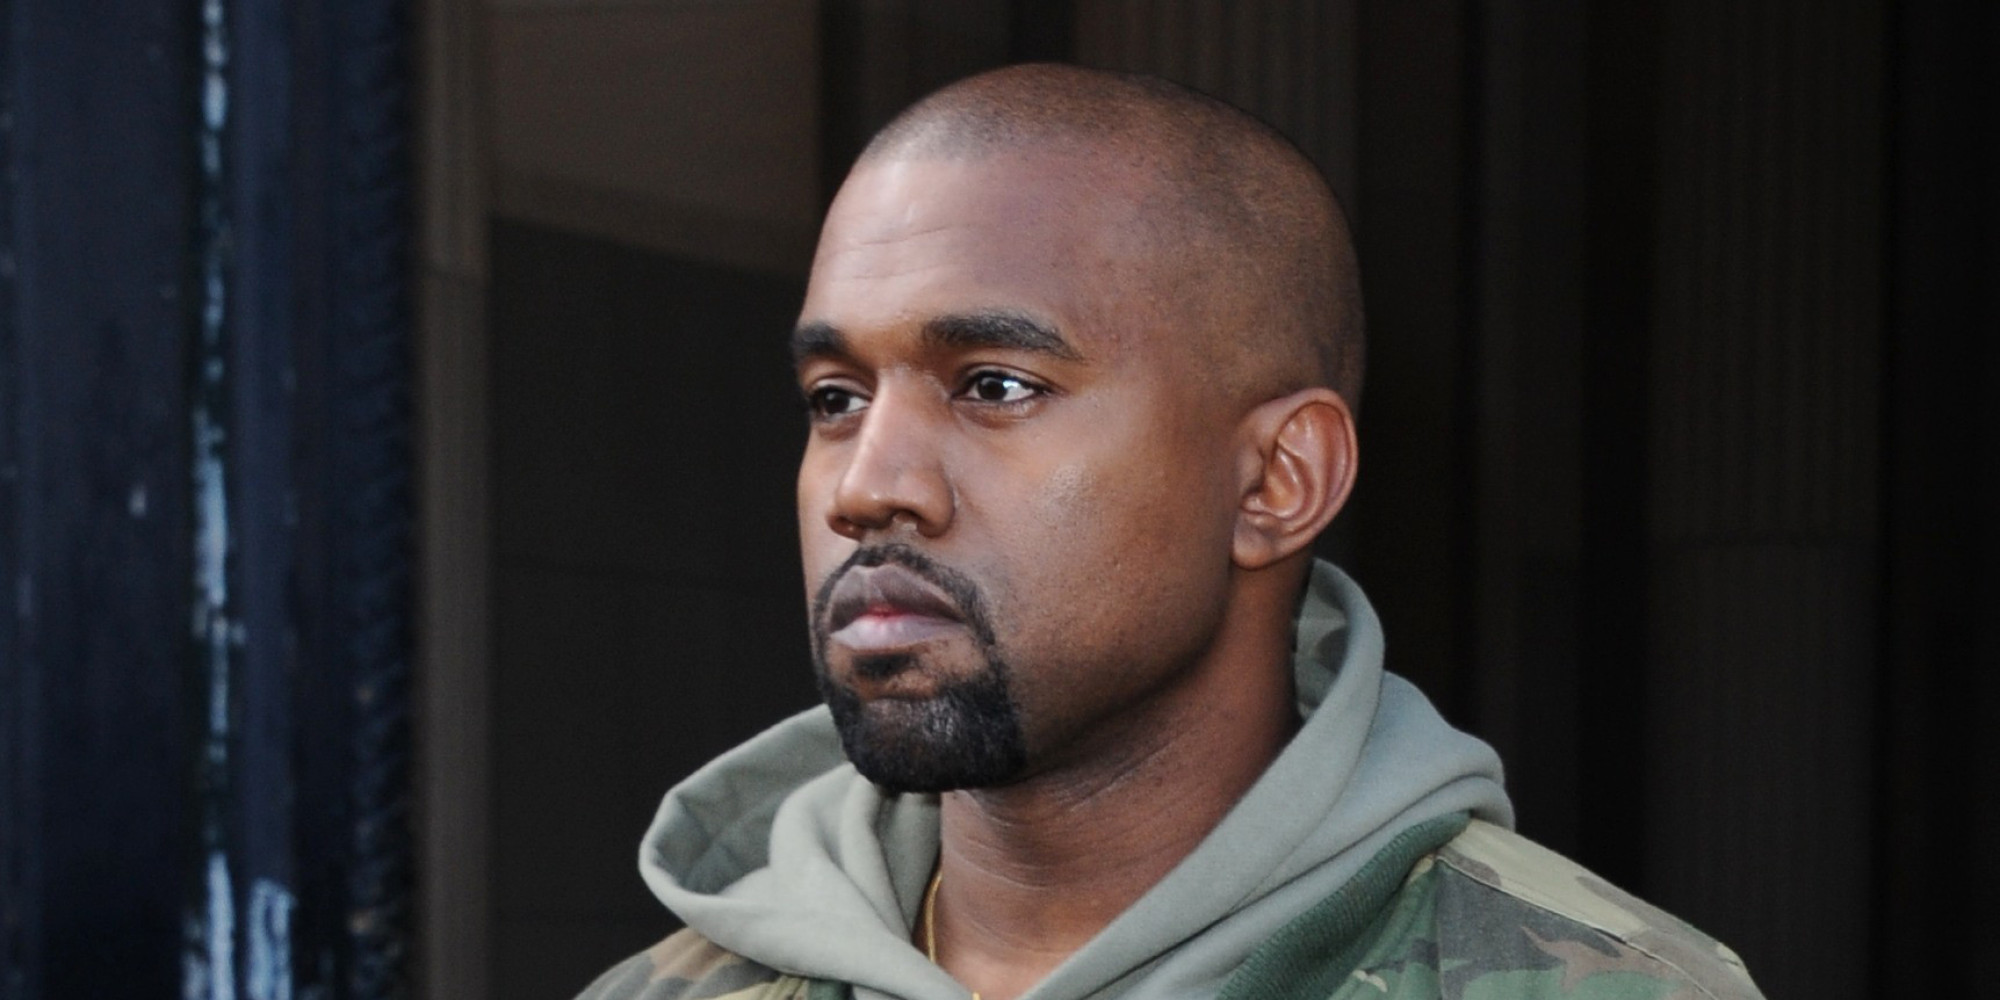 Kanye West Spends $500 A DAY On Haircuts, Claims Rihanna's ...